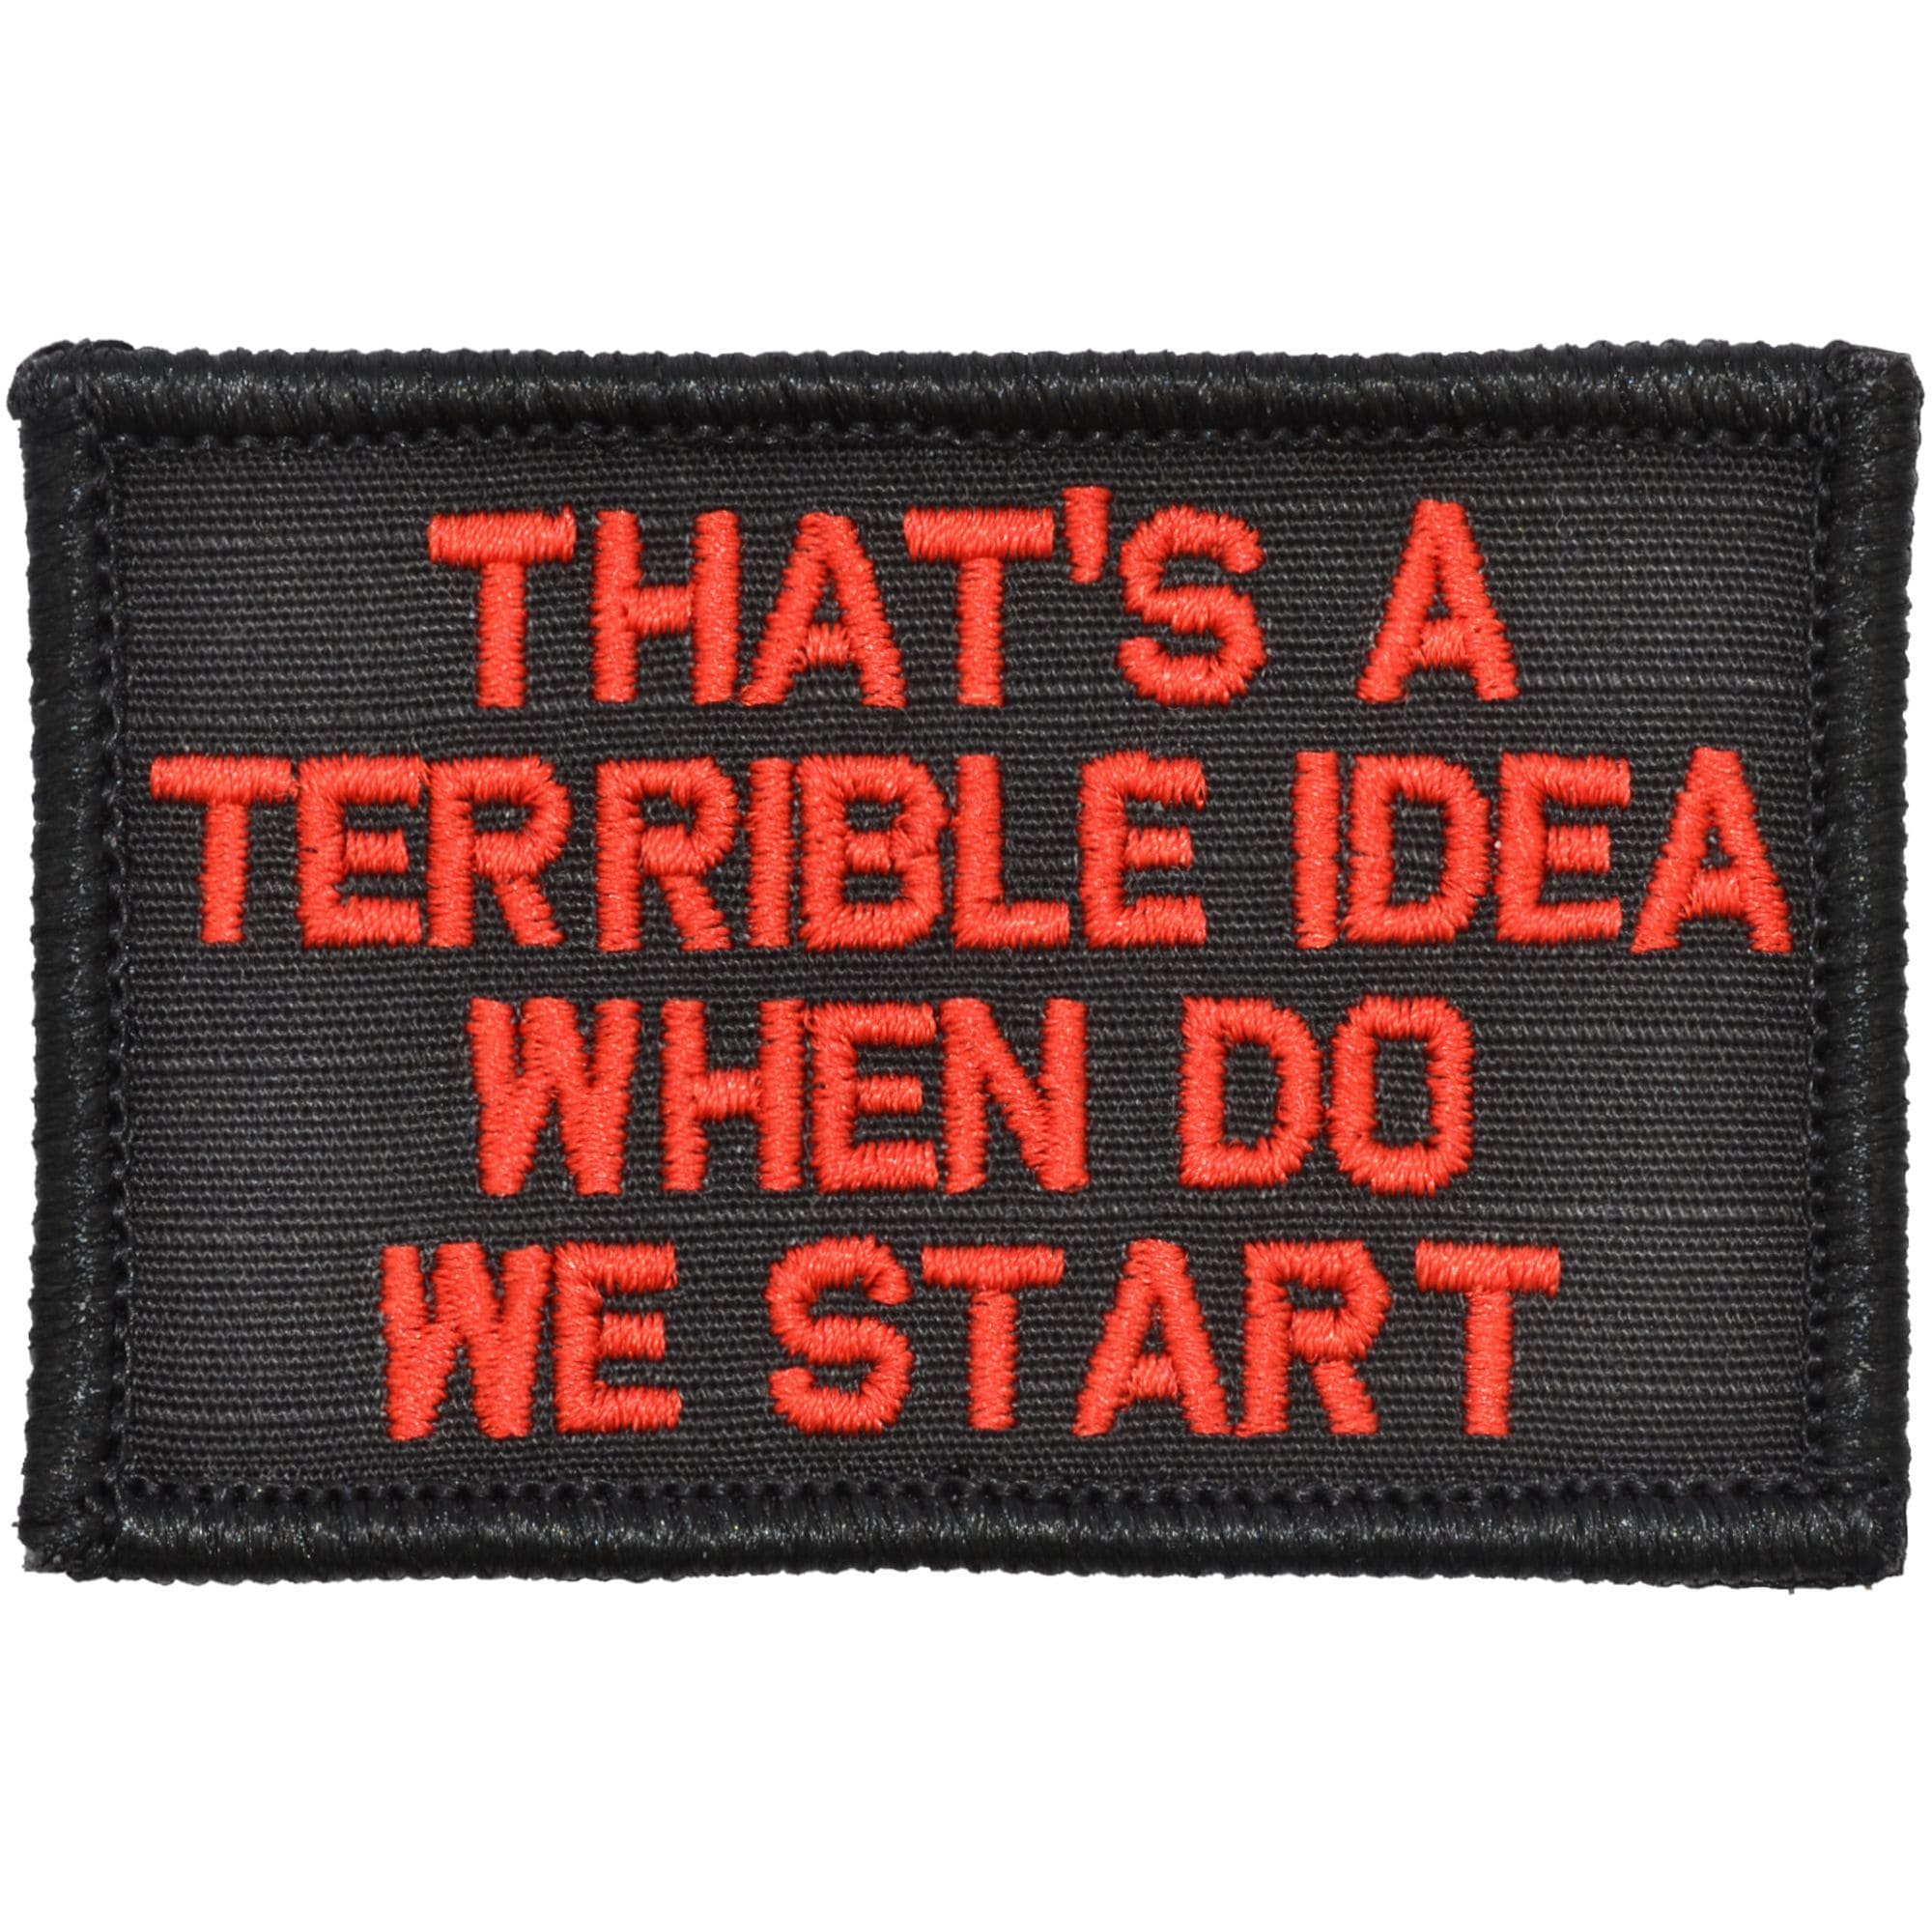 Tactical Gear Junkie Patches Black w/ Red That's a Terrible Idea When Do We Start - 2x3 Patch